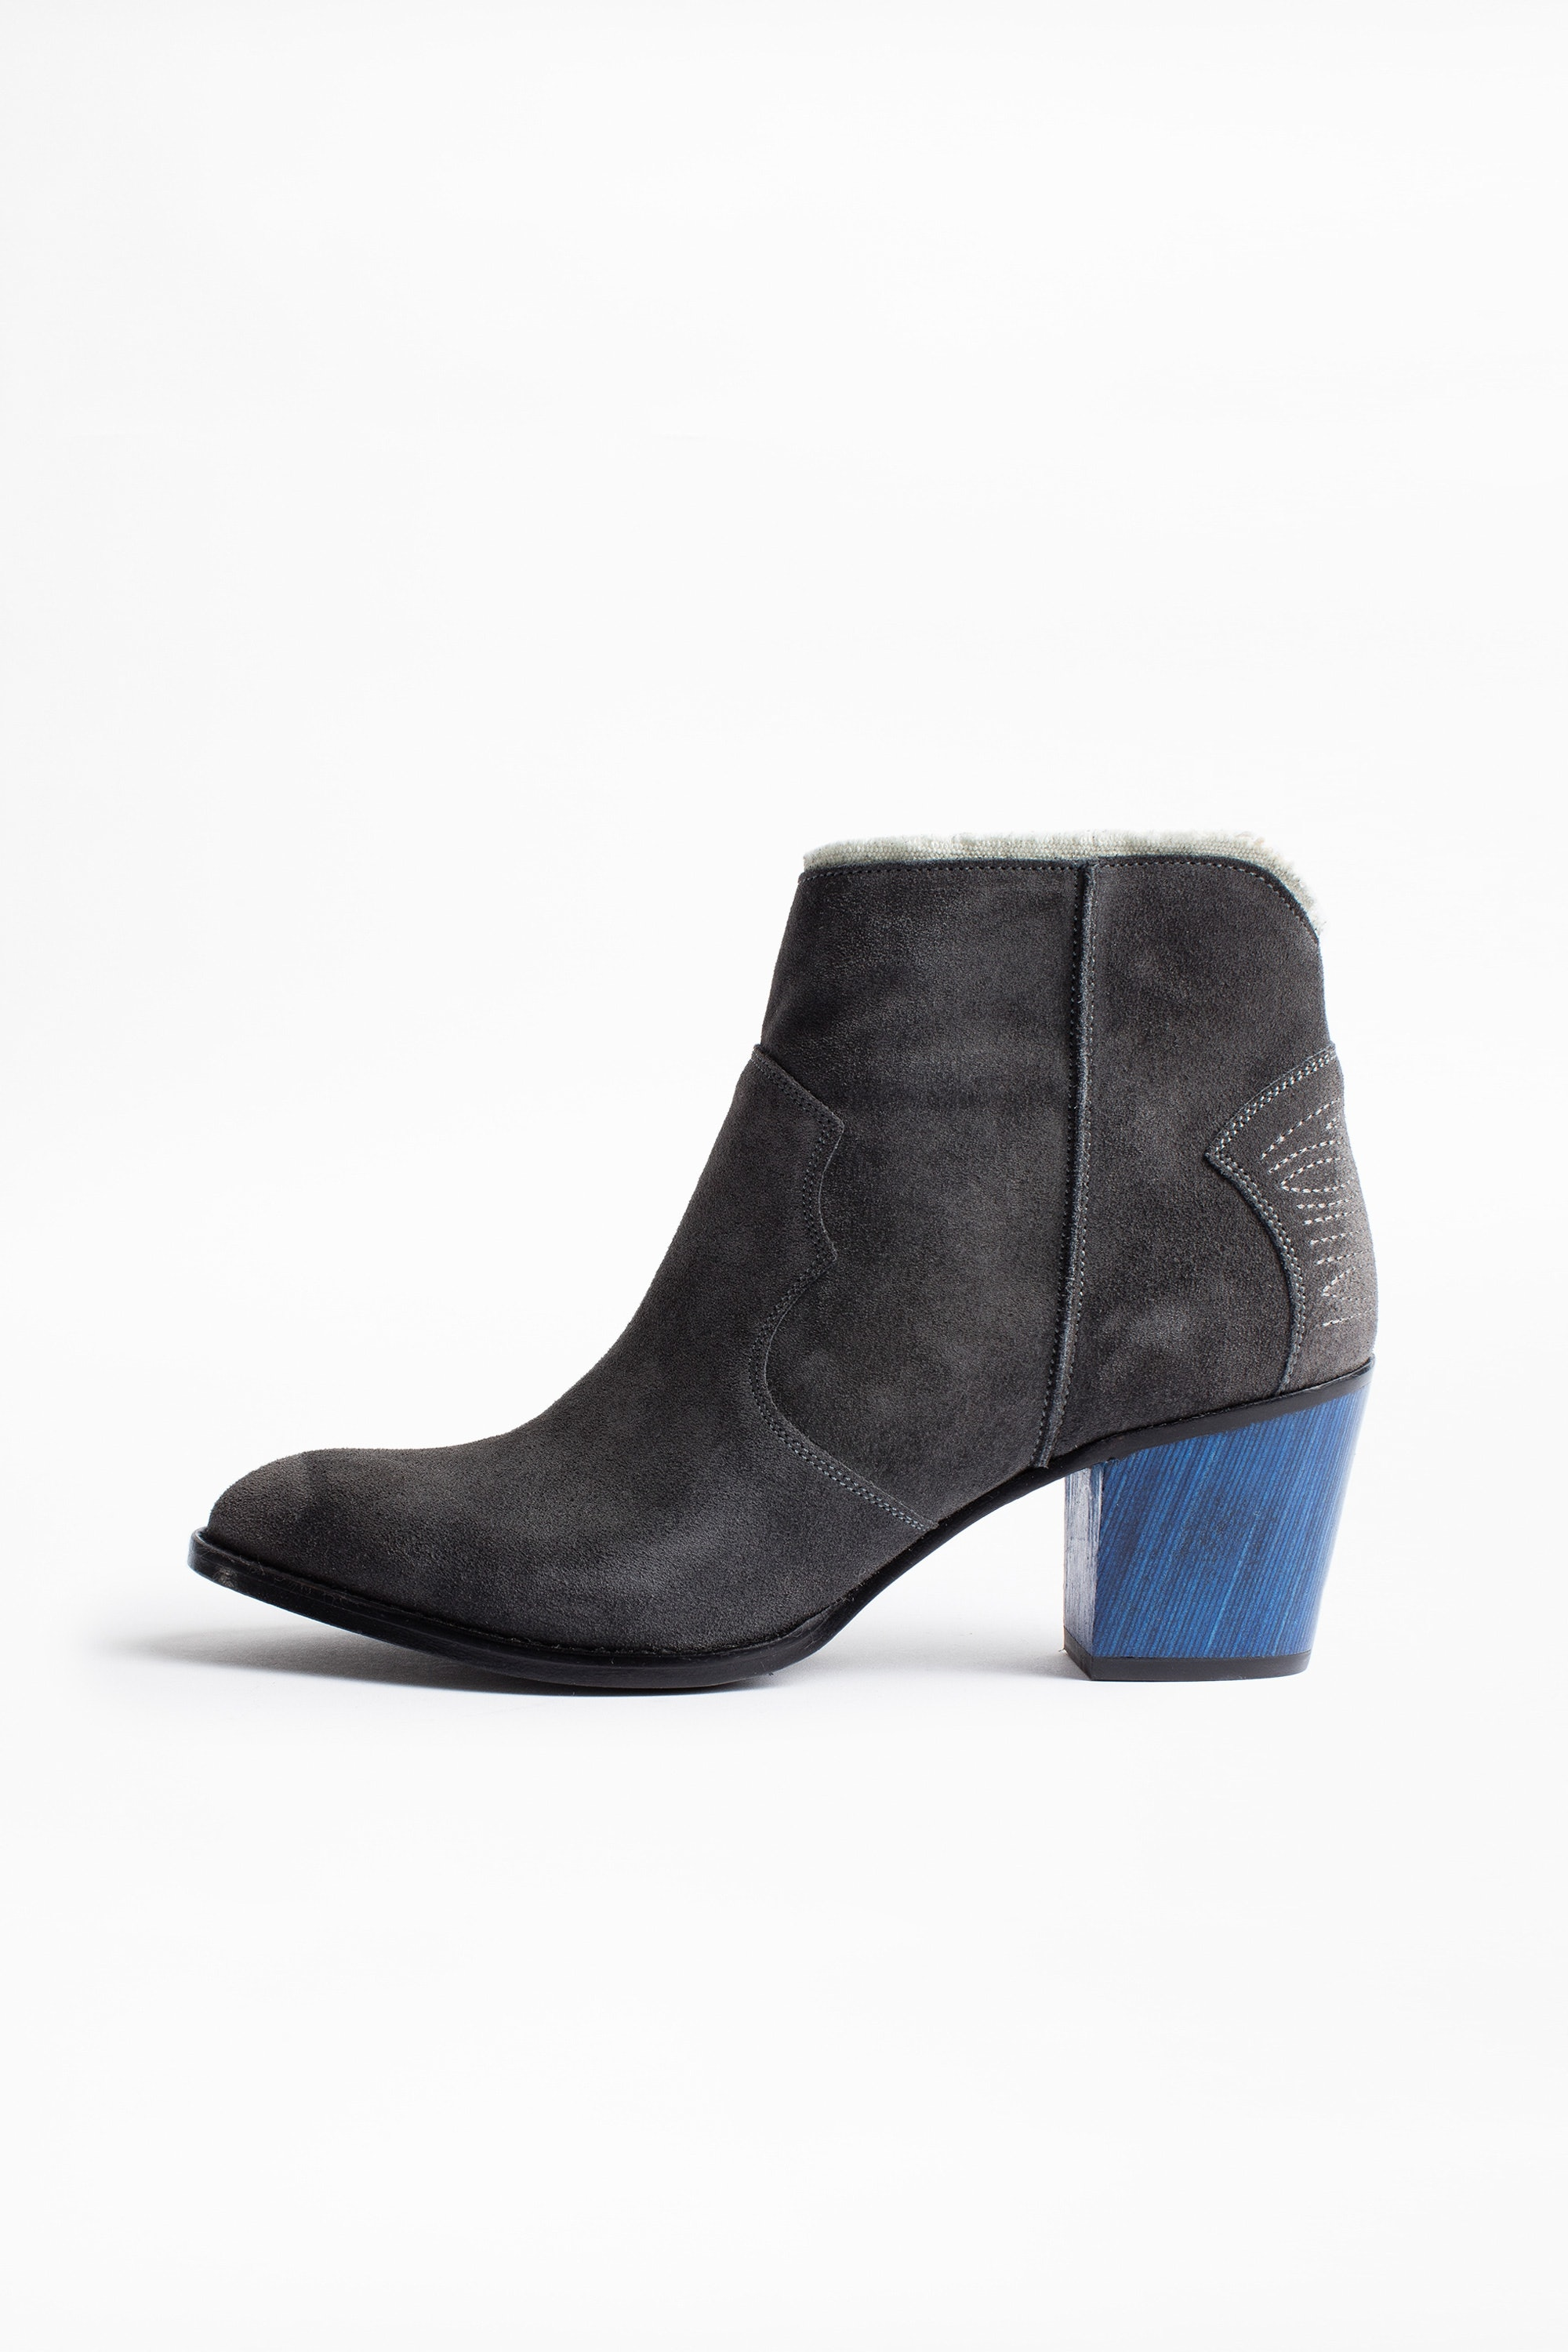 Molly Fray ankle boots